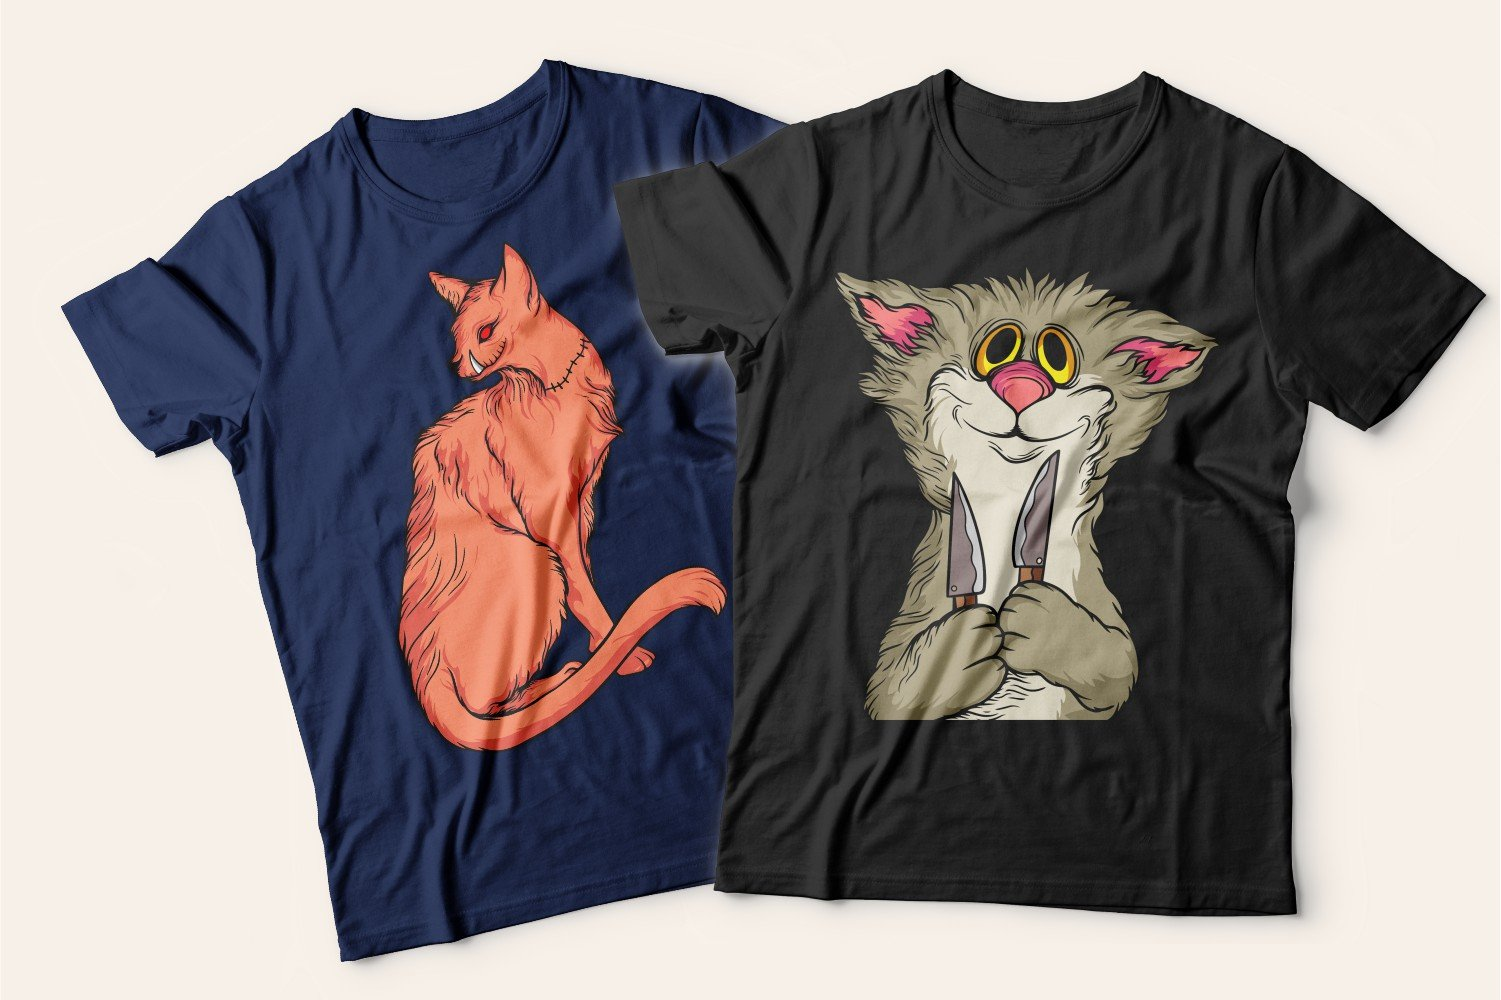 Two T-shirts with cats: one blue with a ginger cat, the other black with a gray hungry cat.